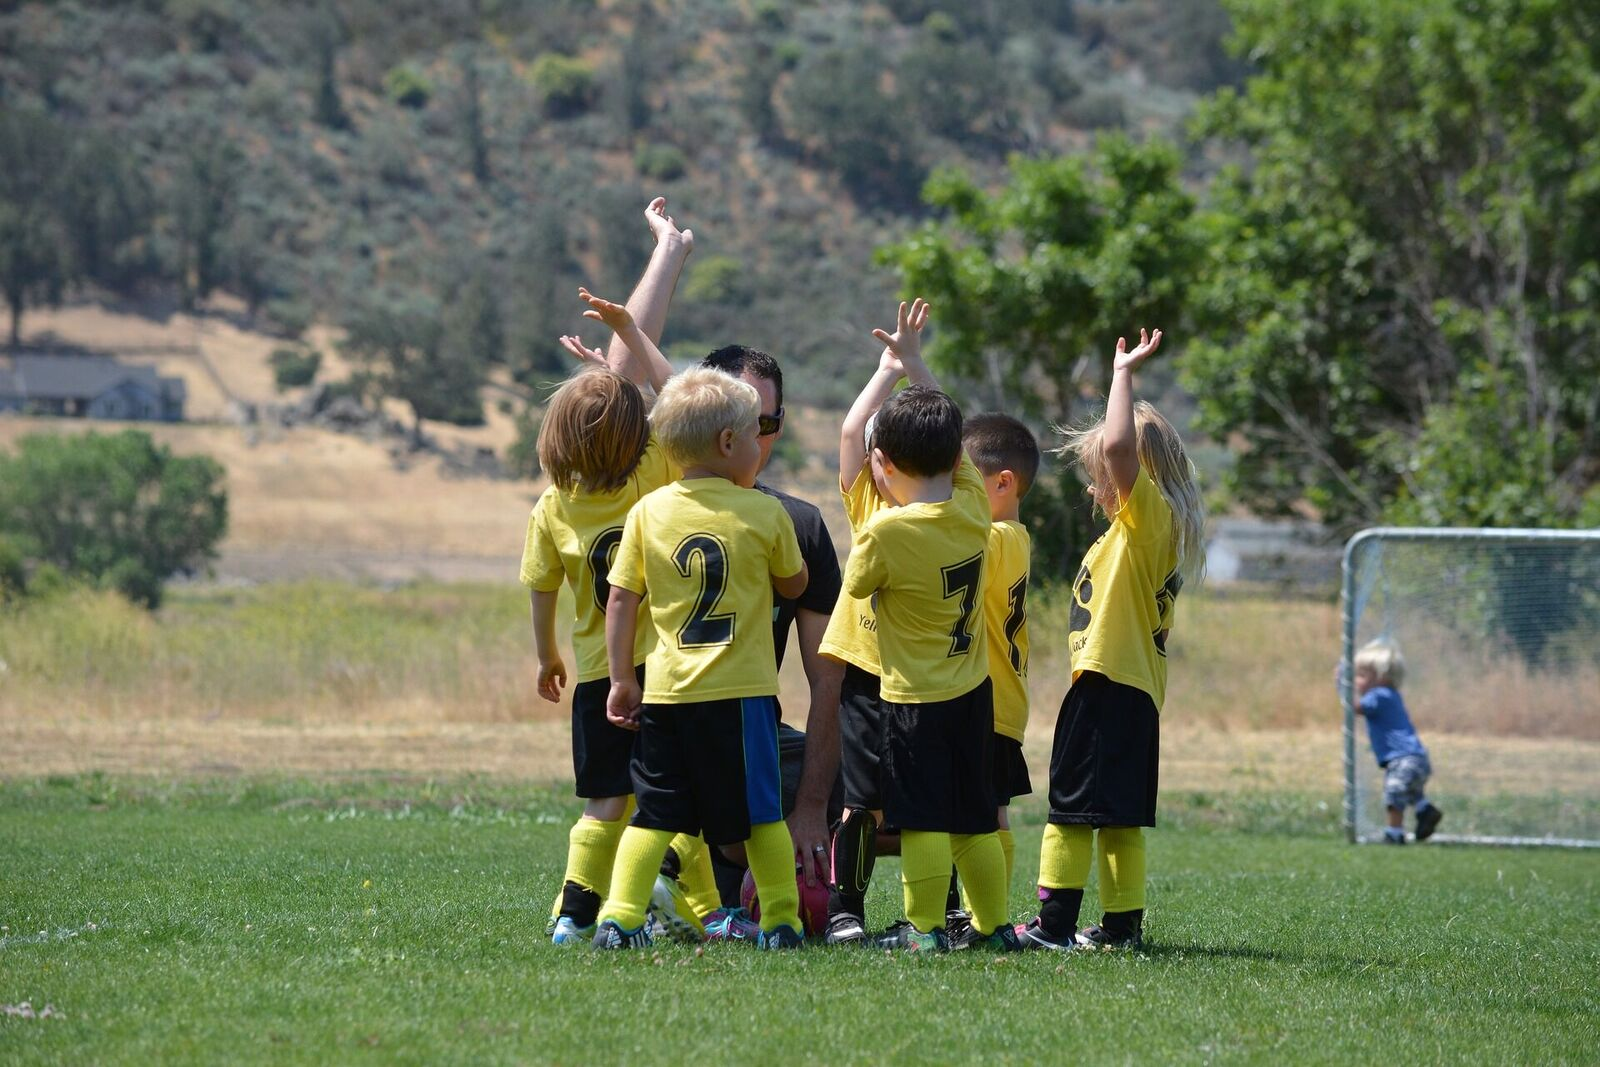 Soccer beginners novice youth football kids new to soccer team age 5 coaching drills private soccer lessons